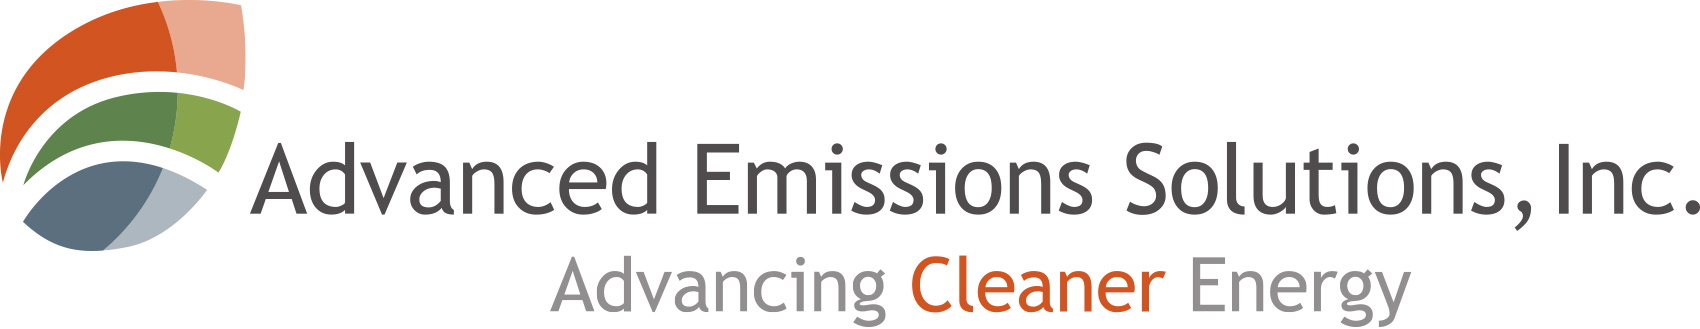 Advanced Emissions Solutions, Inc. Announces Closing of ADA Carbon Solutions, LLC Acquisition